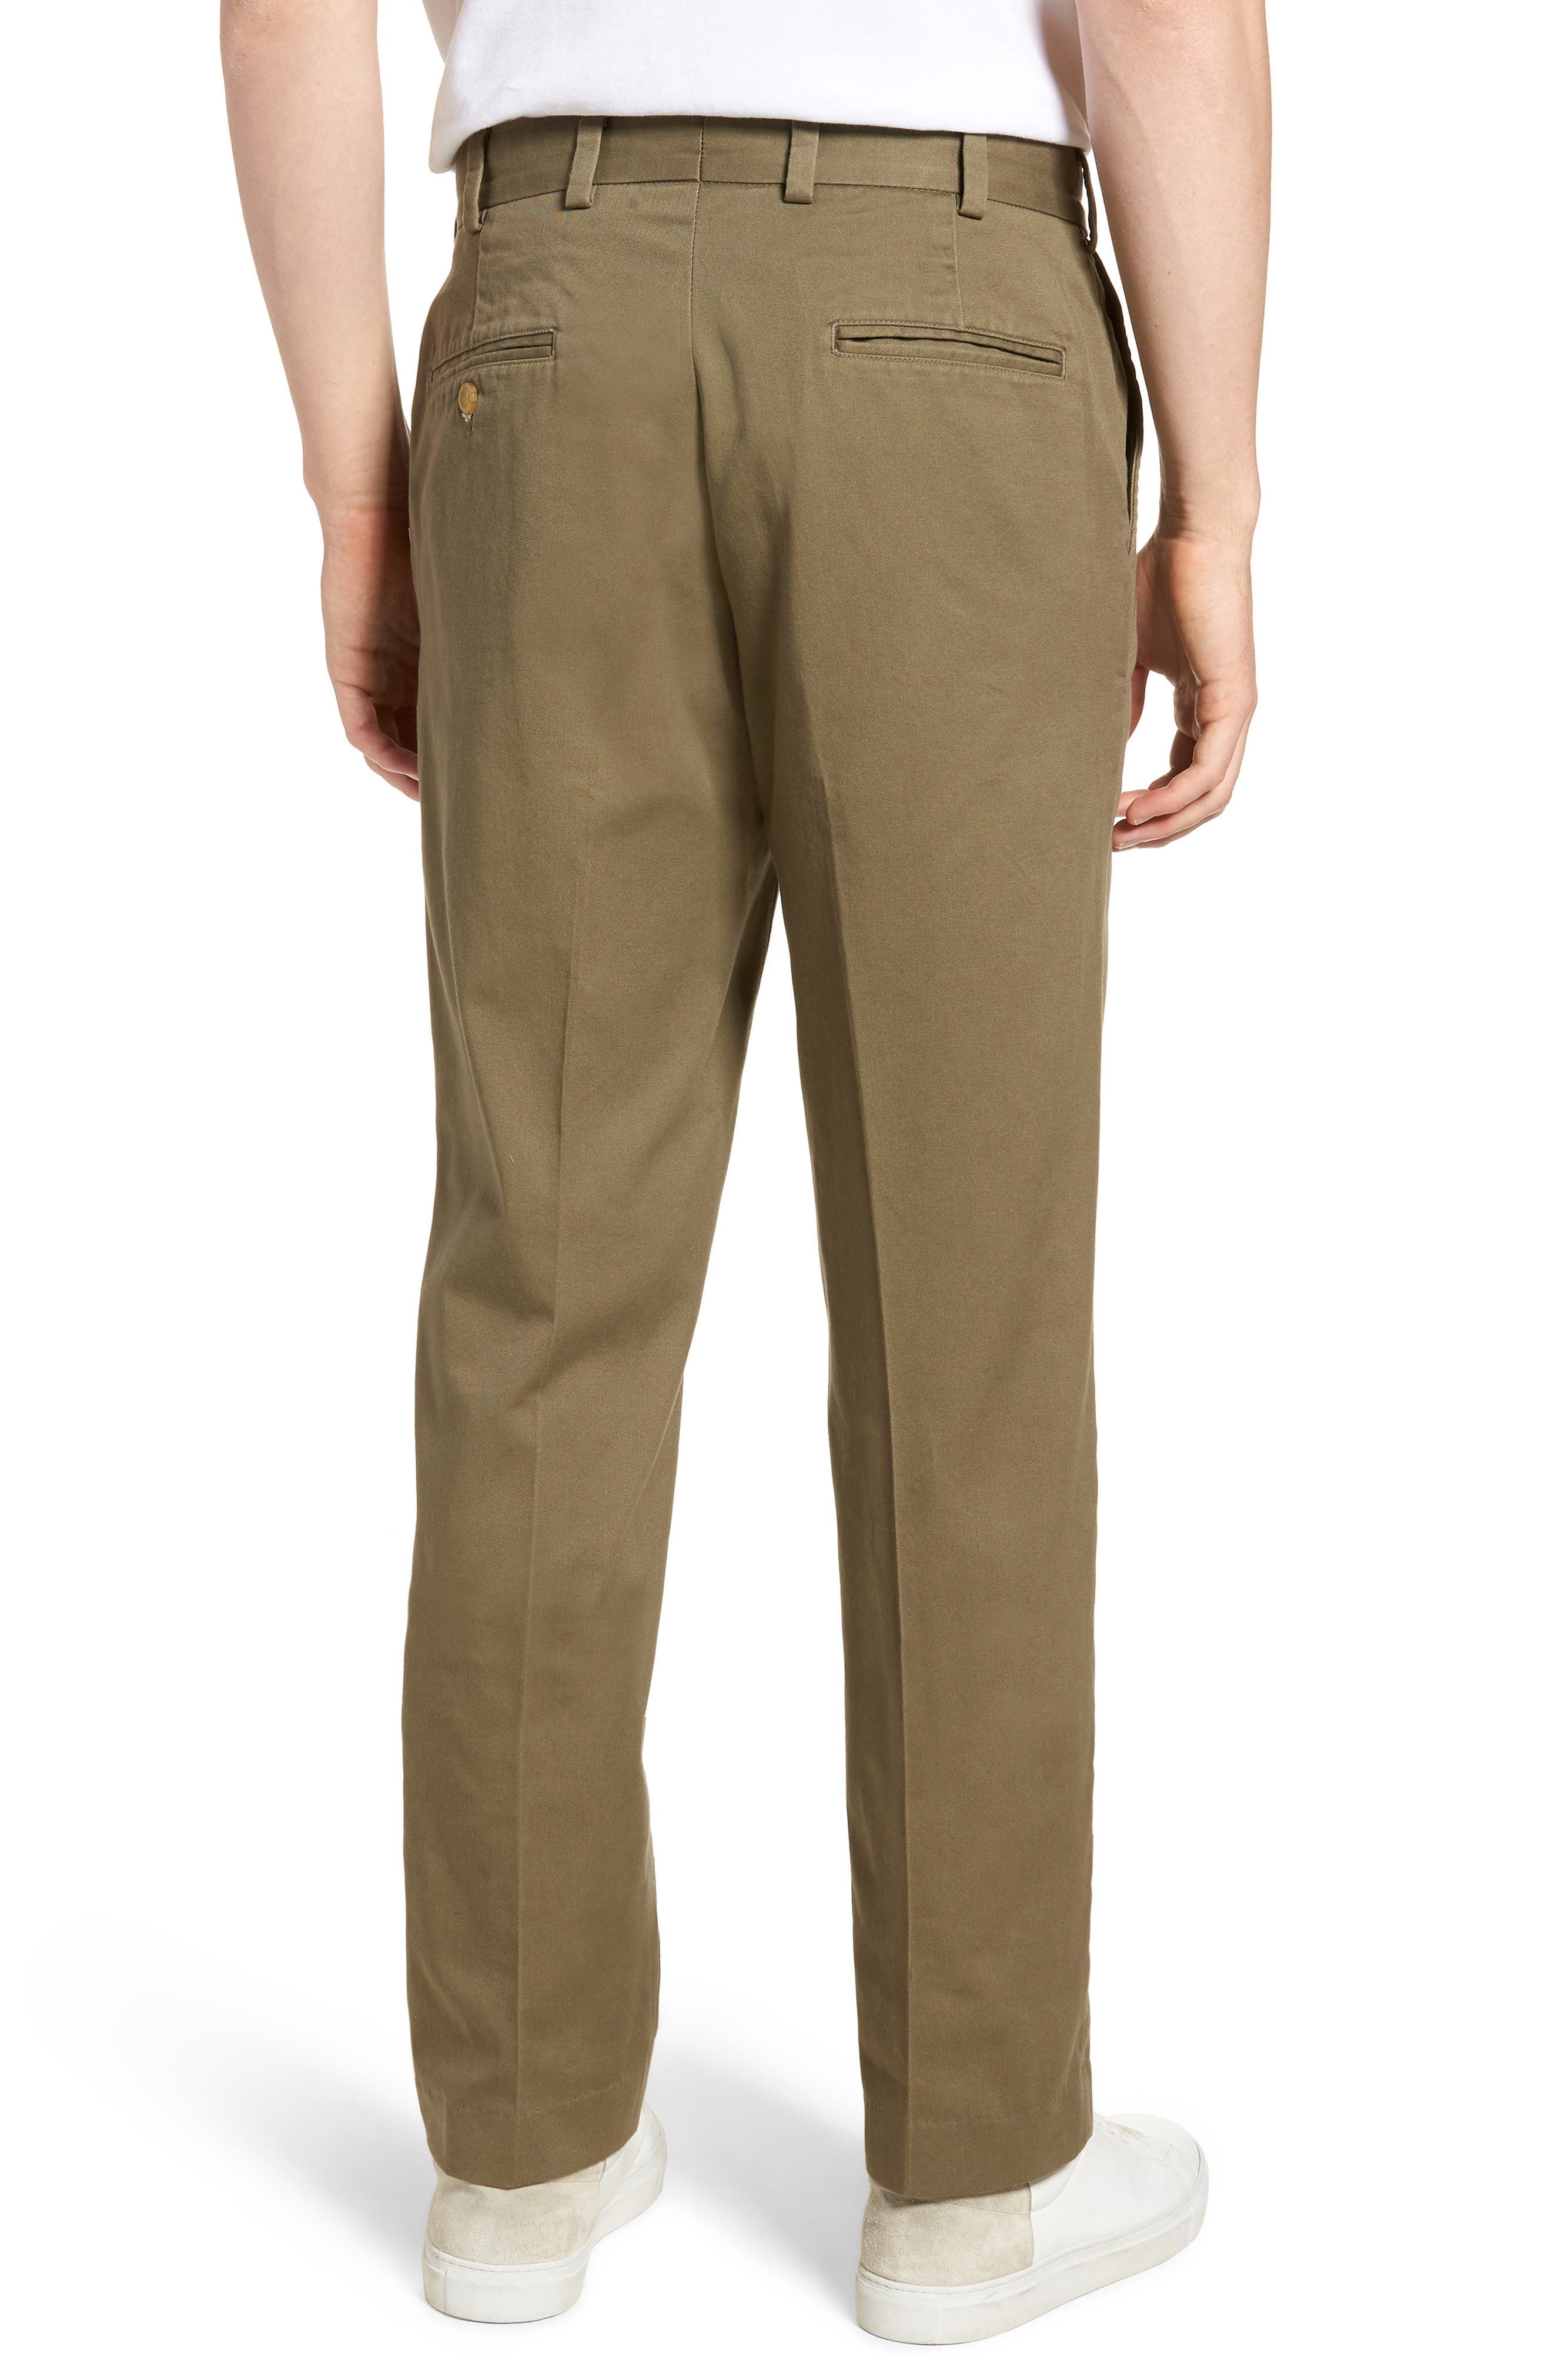 M3 Straight Fit Flat Front Vintage Twill Pants,                             Alternate thumbnail 2, color,                             330